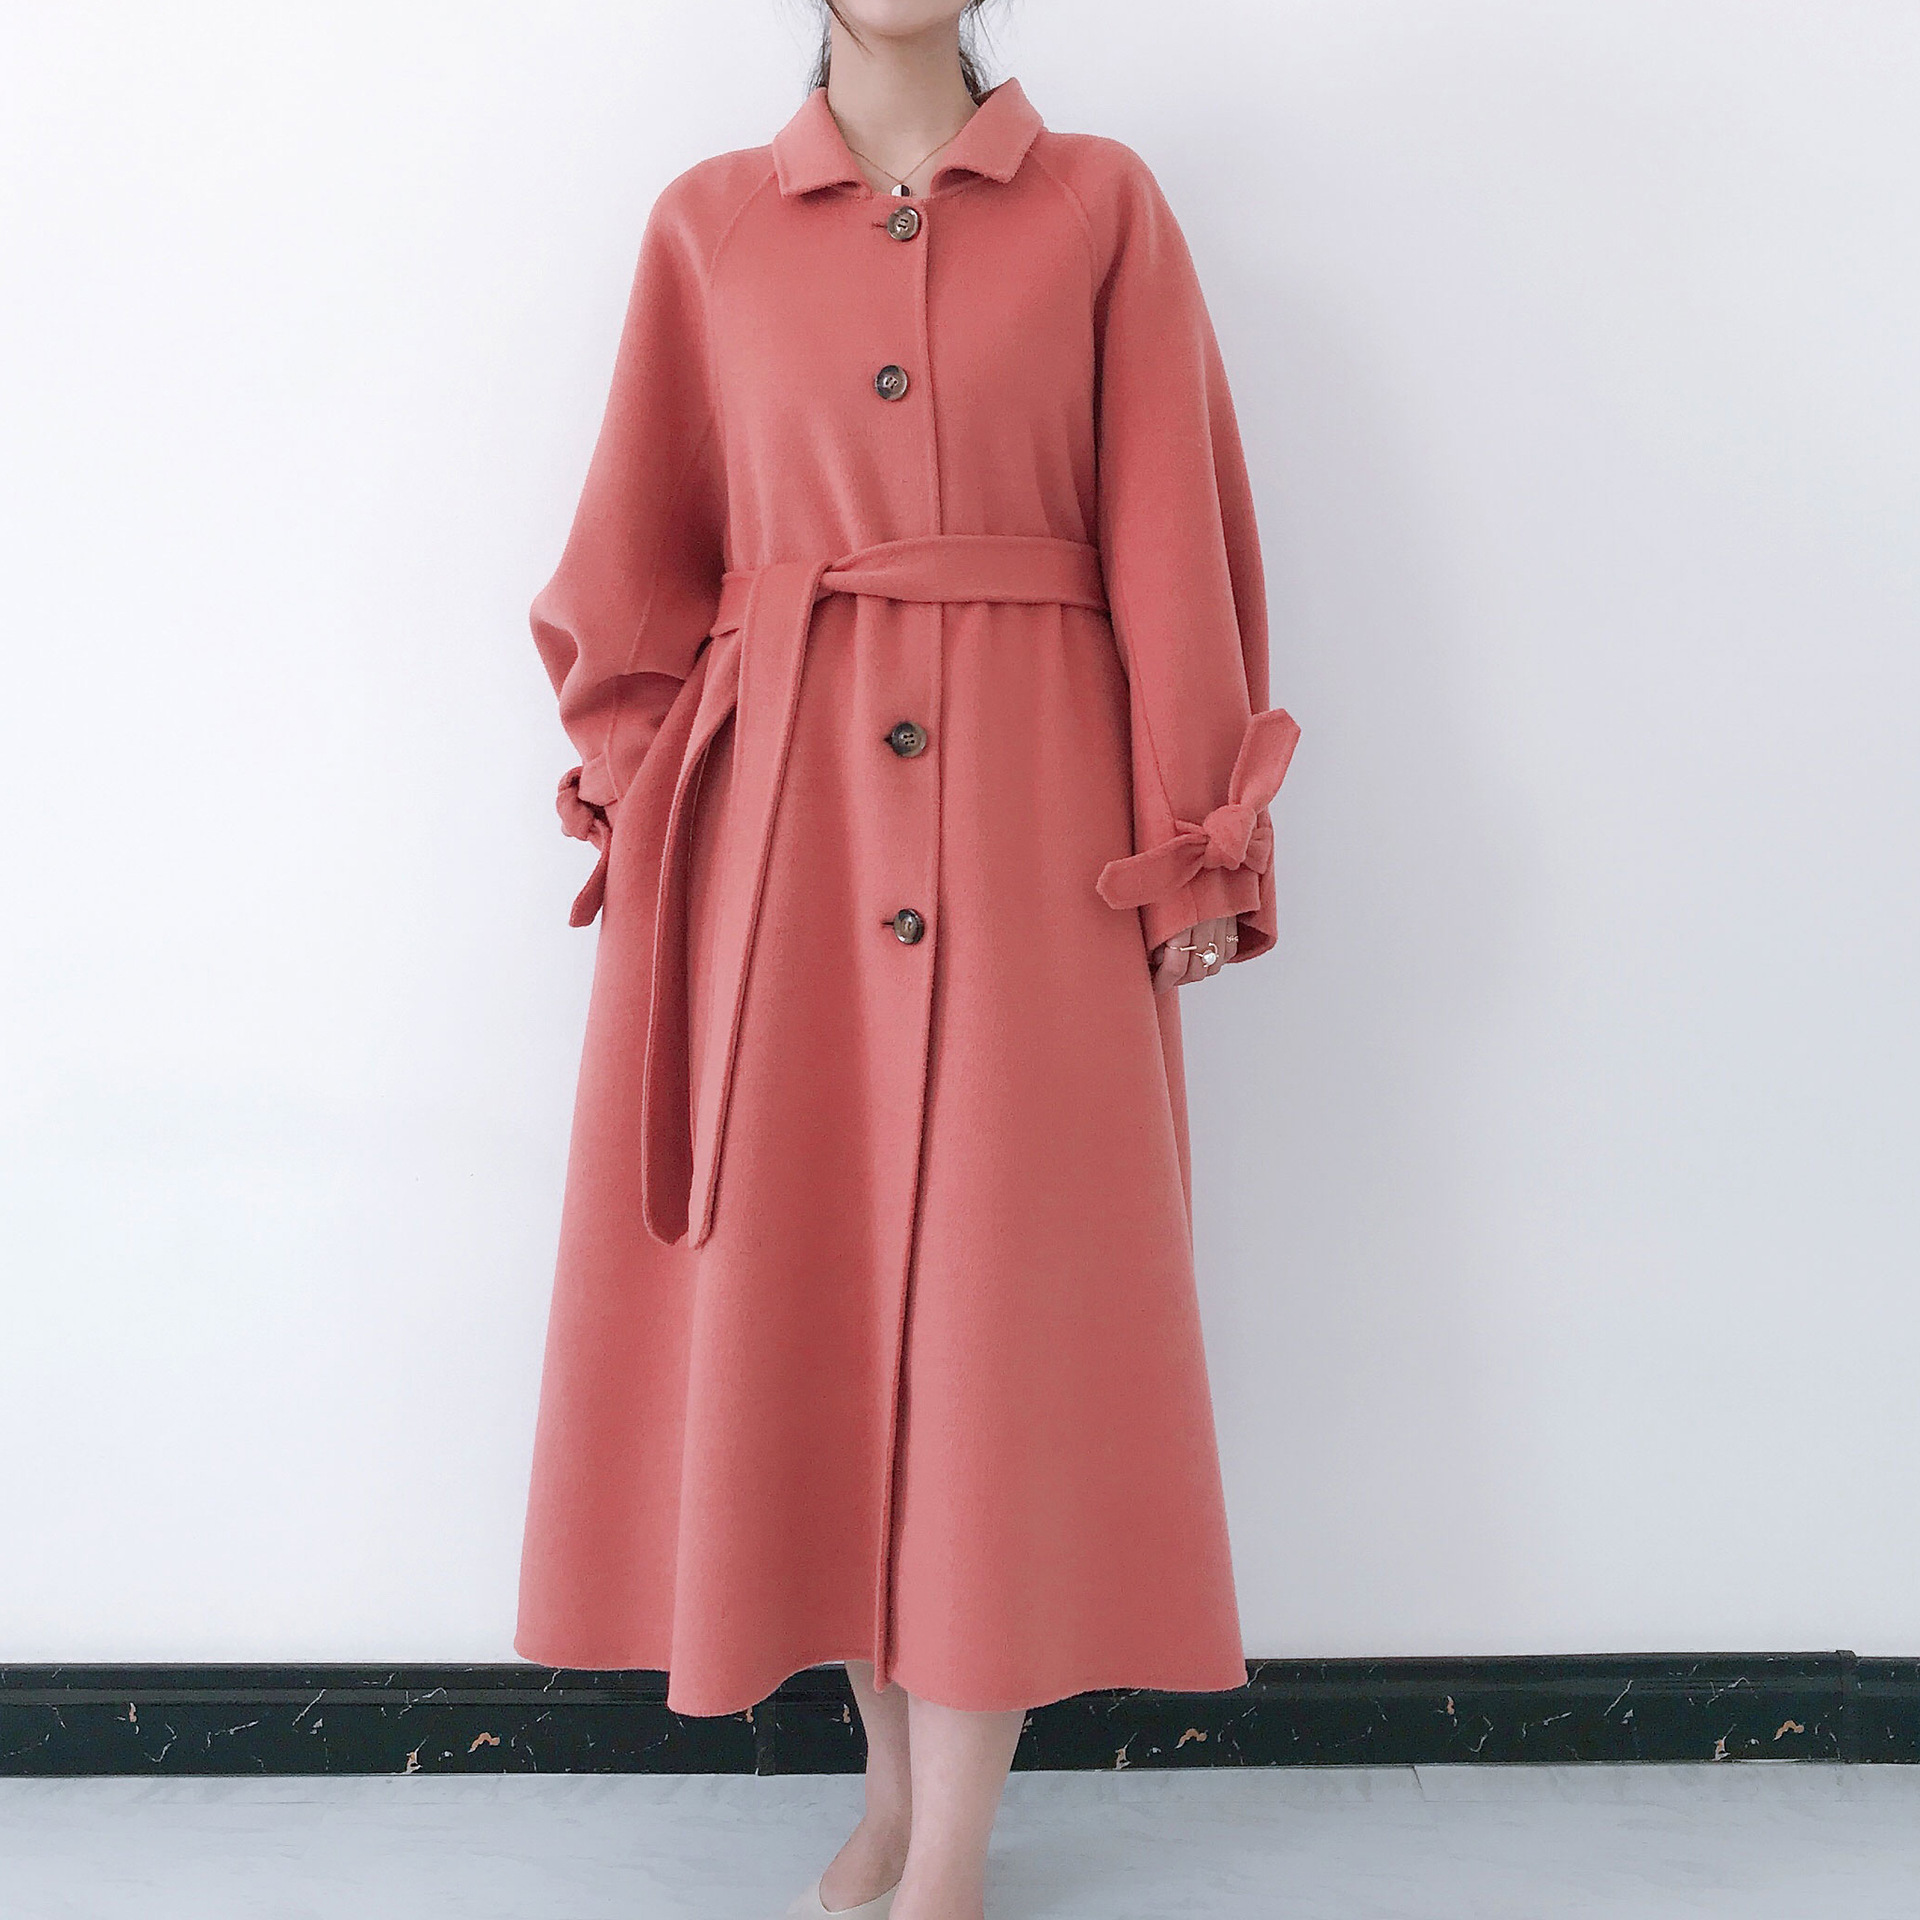 Laine Trench Bleu Femmes 2019 Ligne pink Unique Bouton Coréenne blue Red Supérieure Outwear Tan coat Lx1955 light Pour De Qualité Une Ayunsue Long Manteau brown AXO6wqx